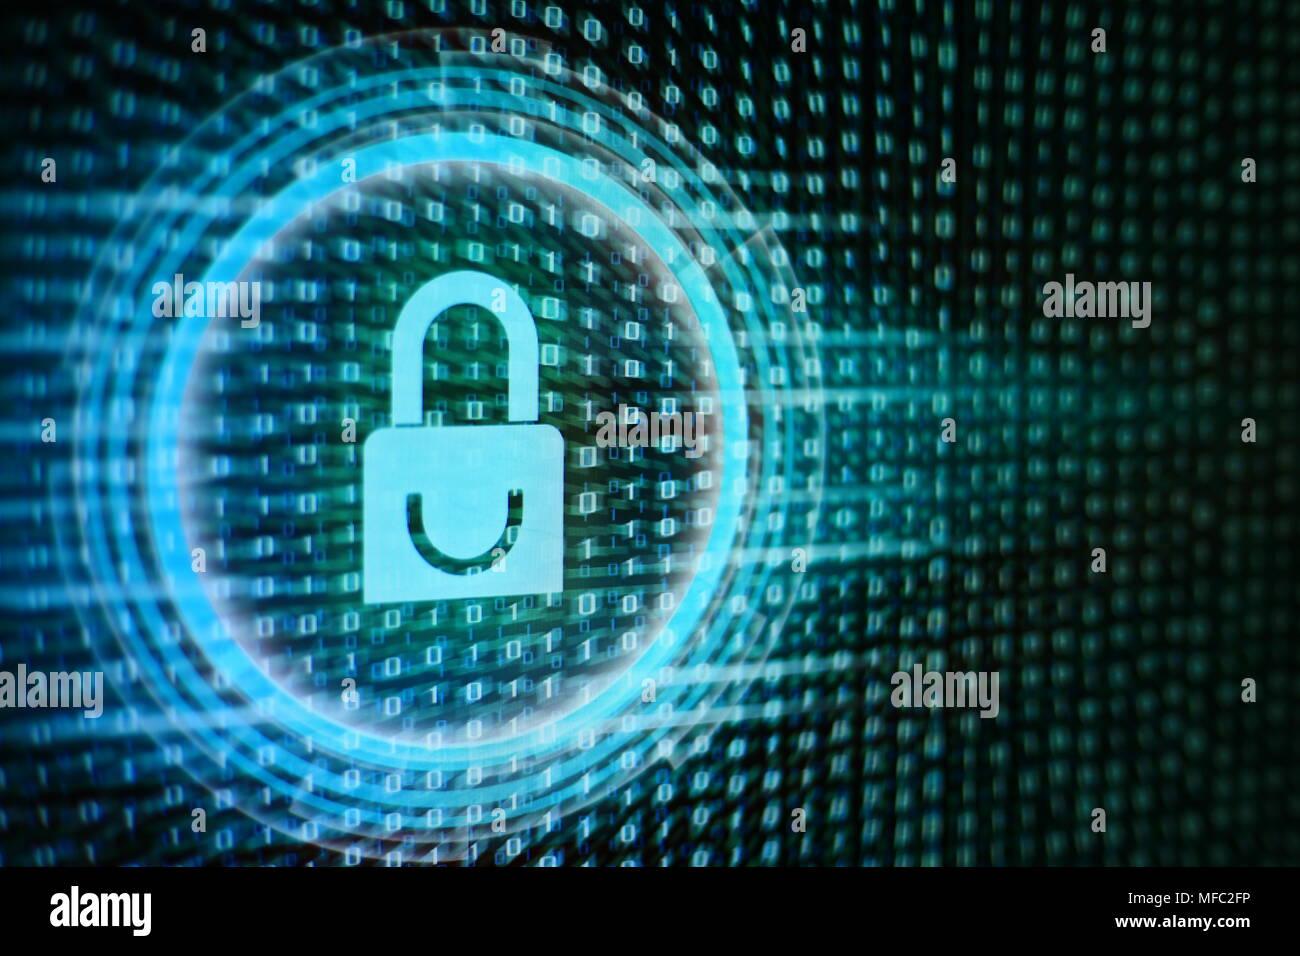 Data privacy information security in social cyber age. Blue Padlock icon, circle light energy surrounding, on blue green binary code bit flowing movem - Stock Image